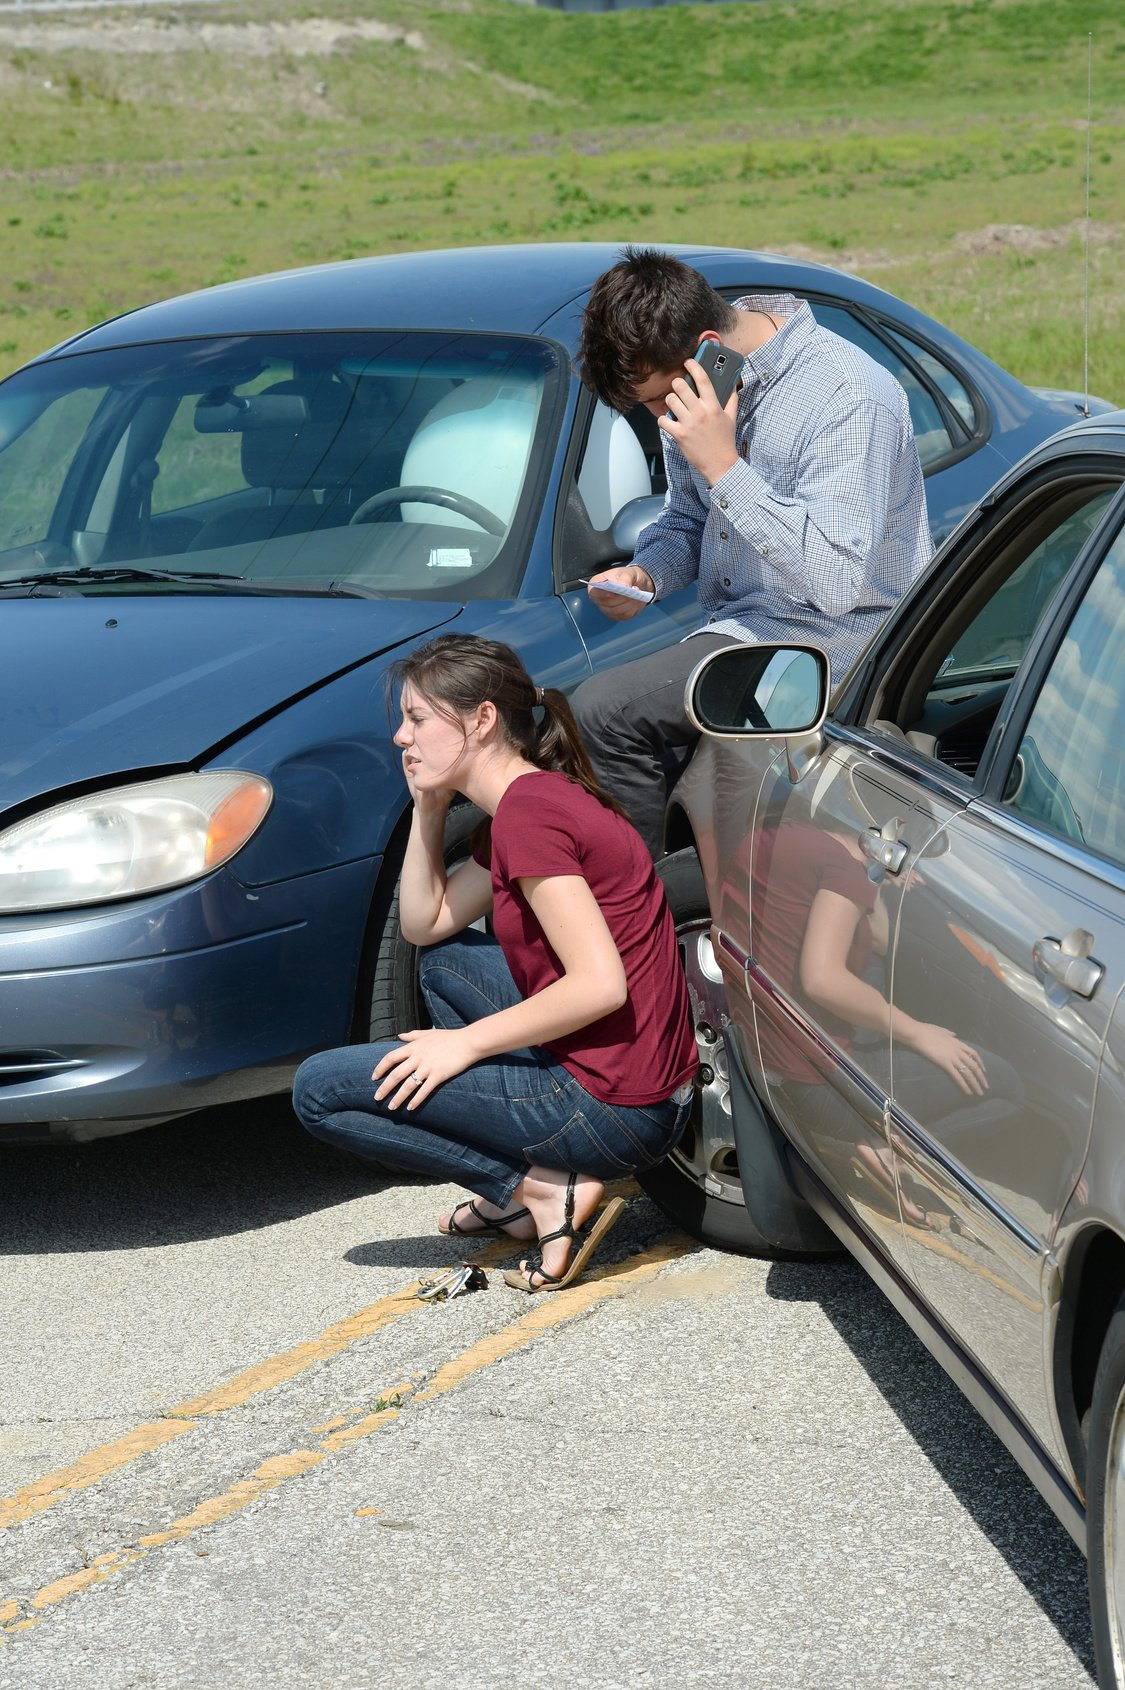 car wreck lawyer baton rouge